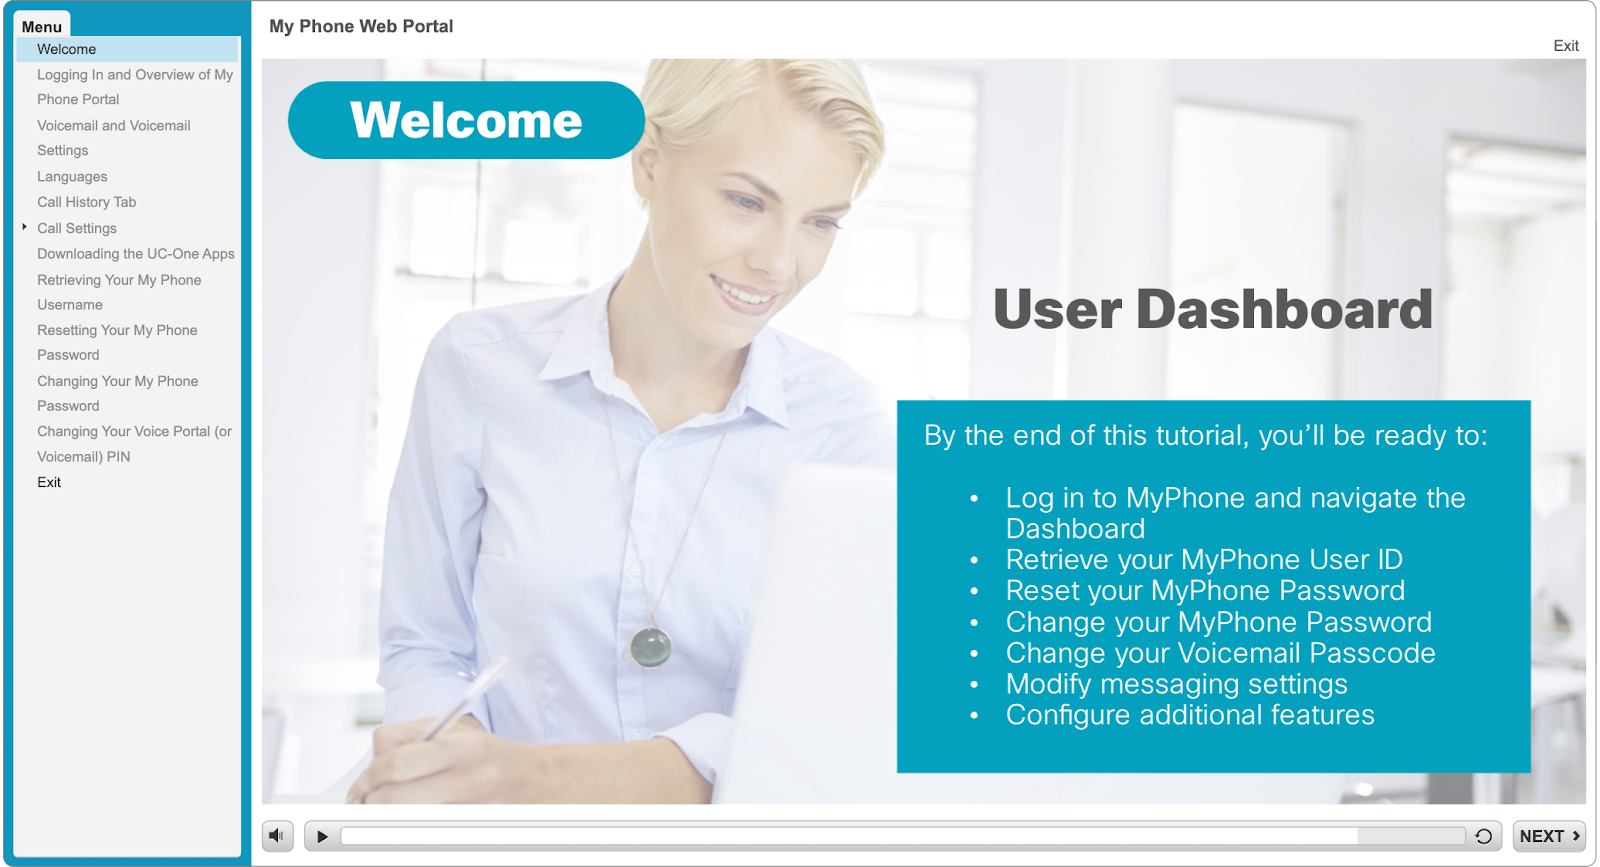 Basic user guide on features and login